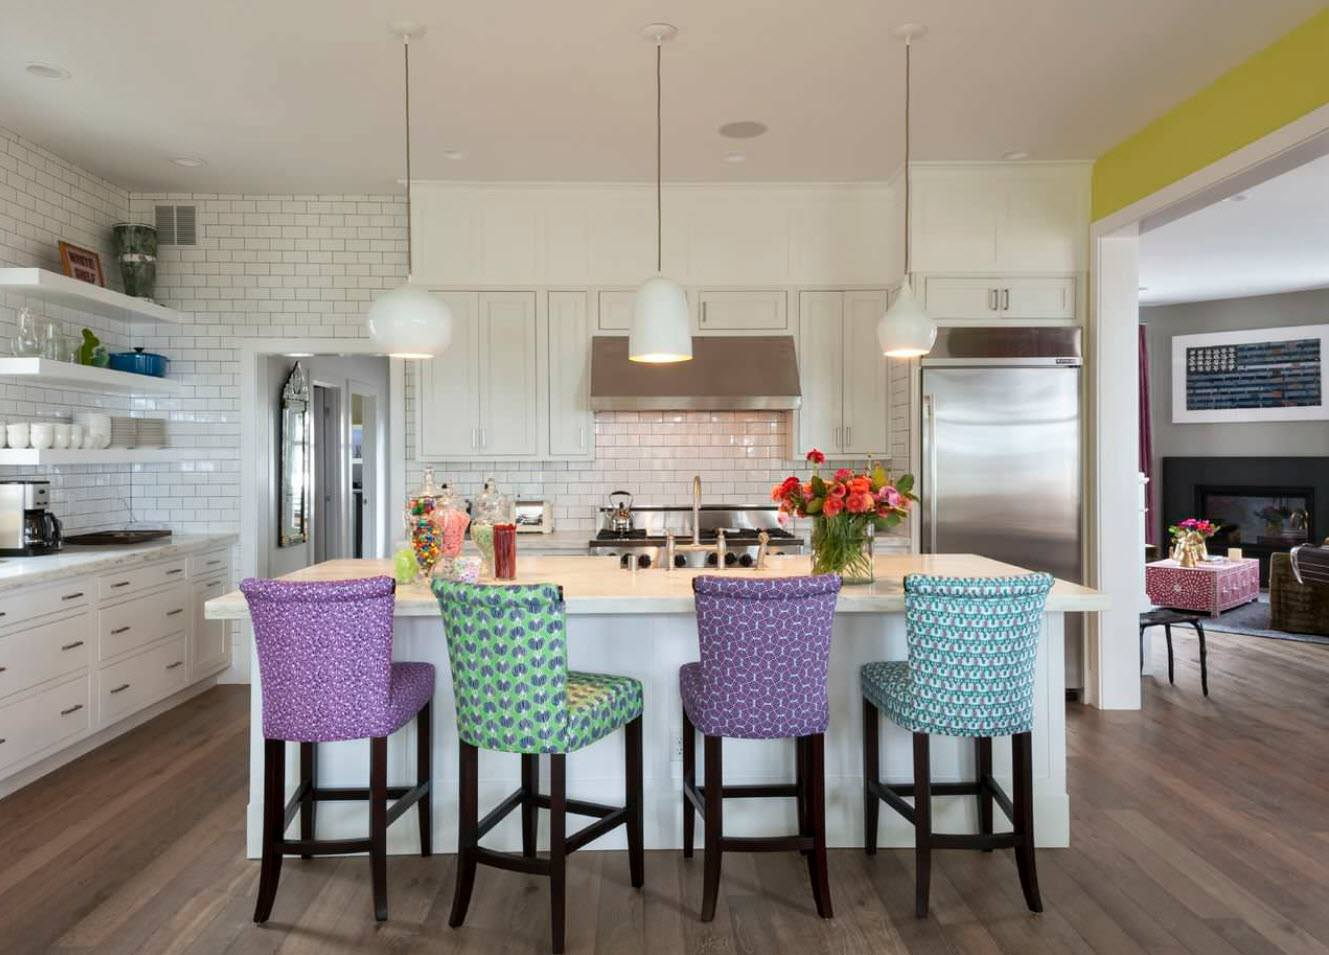 170 Square Feet Kitchen Design Ideas with Photos. Colorful chairs for the contemporary styled kitchen